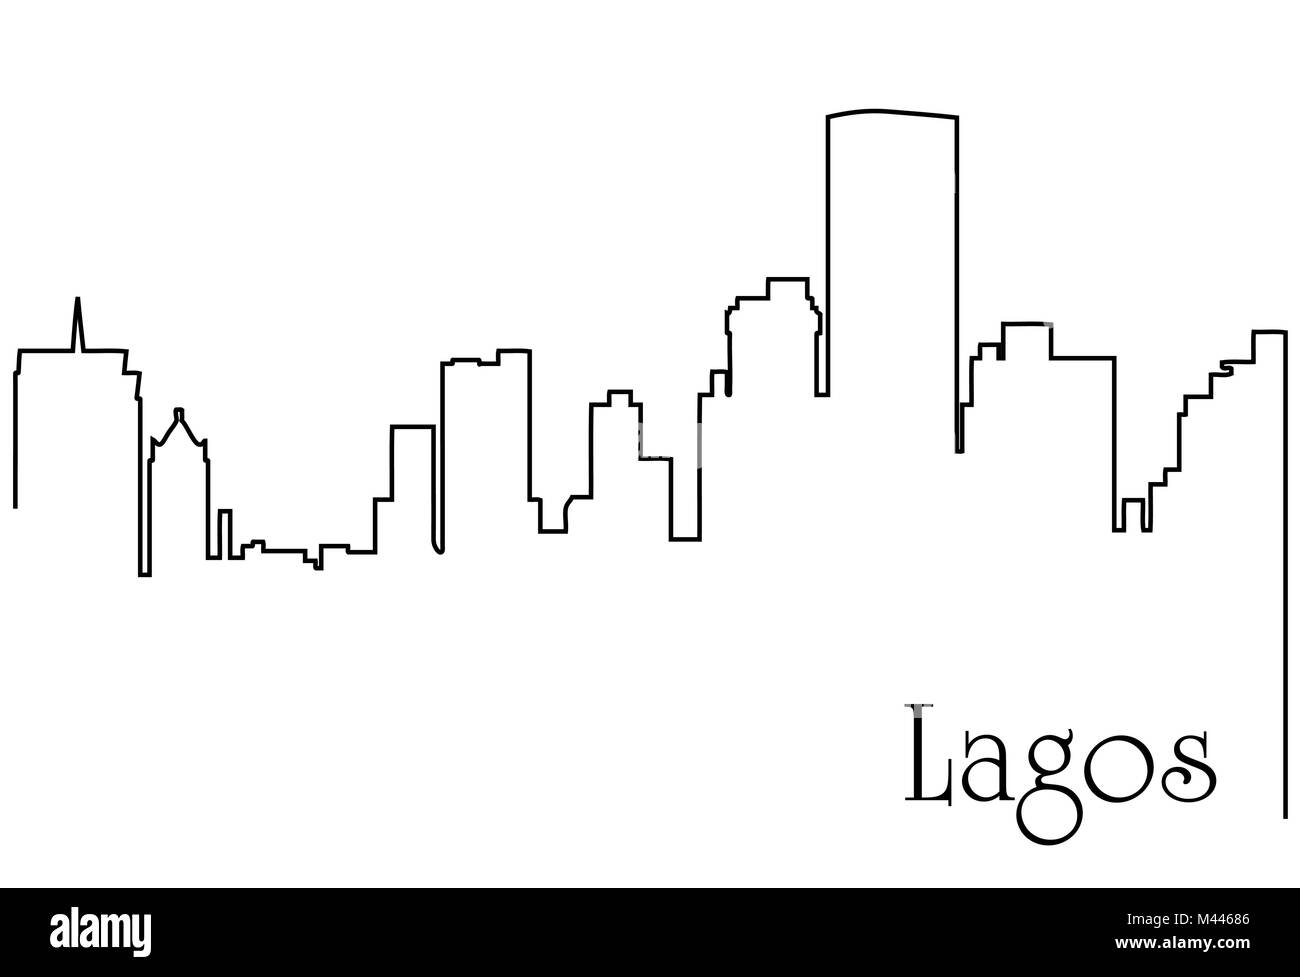 Lagos city one line drawing abstract background with  metropolis cityscape - Stock Image